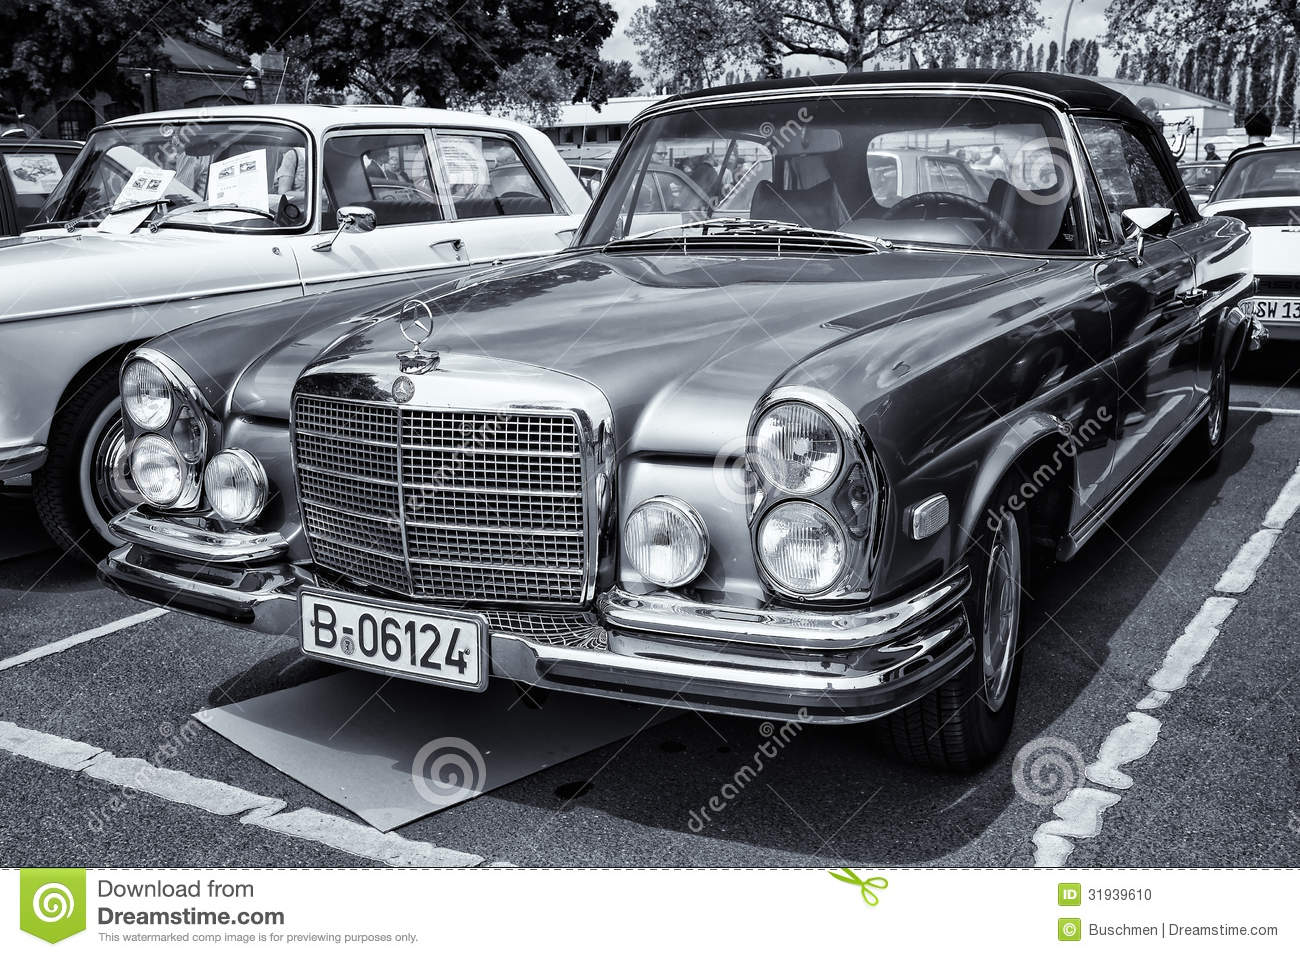 car mercedes benz 280 se w111 coupe black and white. Black Bedroom Furniture Sets. Home Design Ideas